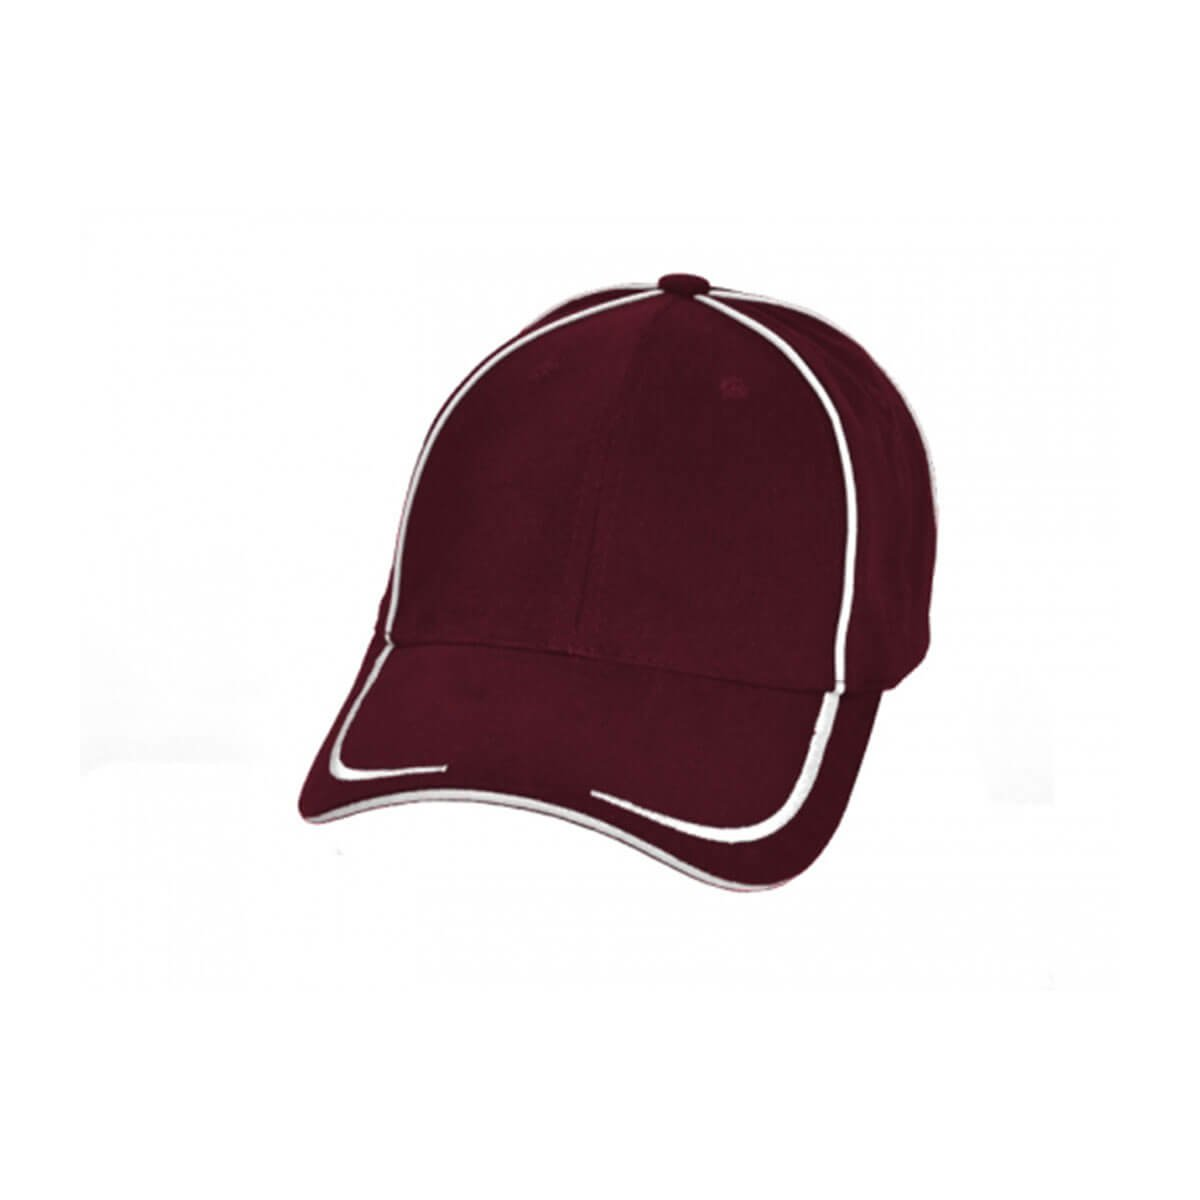 Collier Cap-Maroon / White